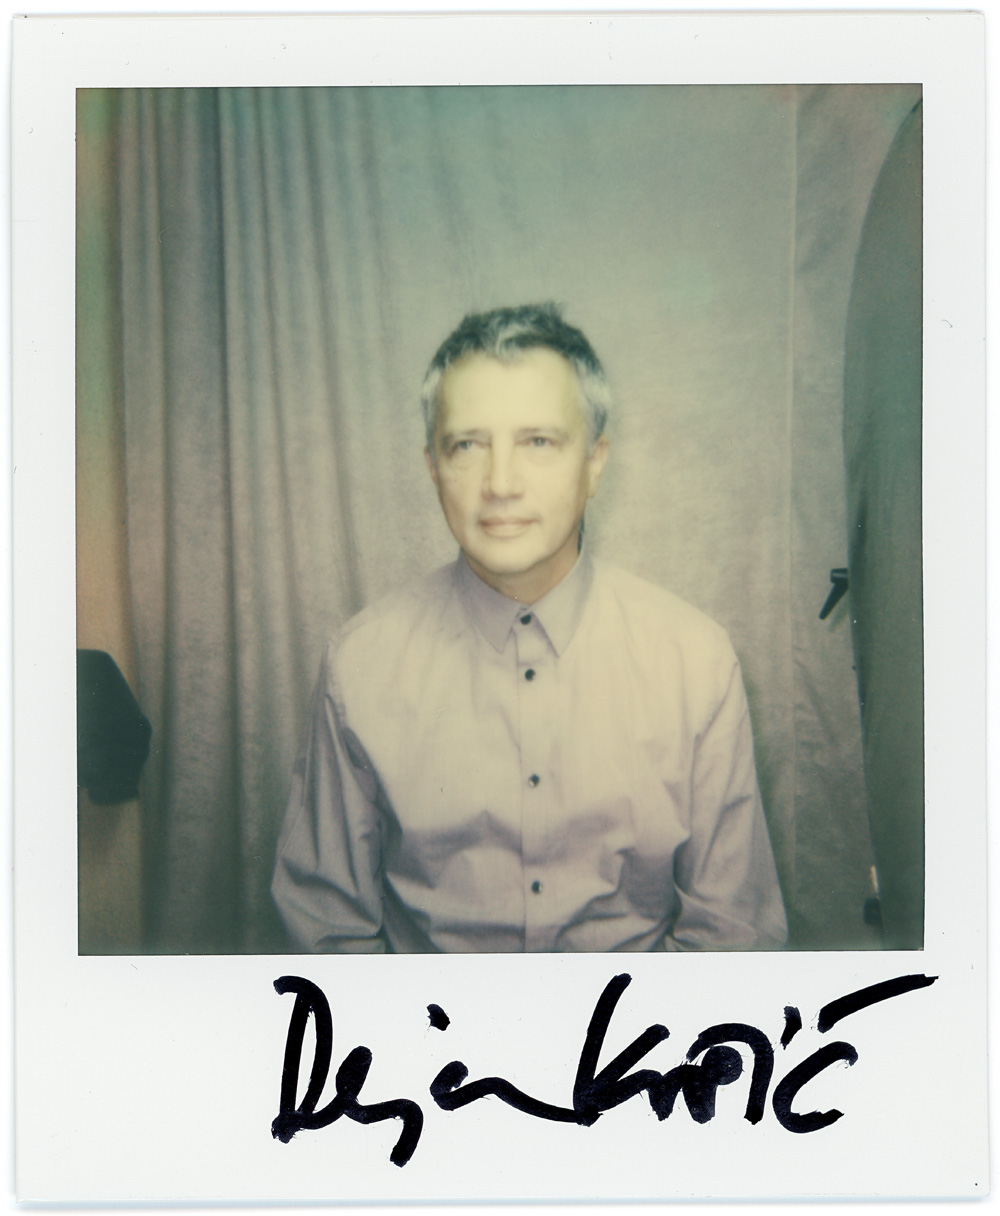 Dejan-Krsic-polaroid-web